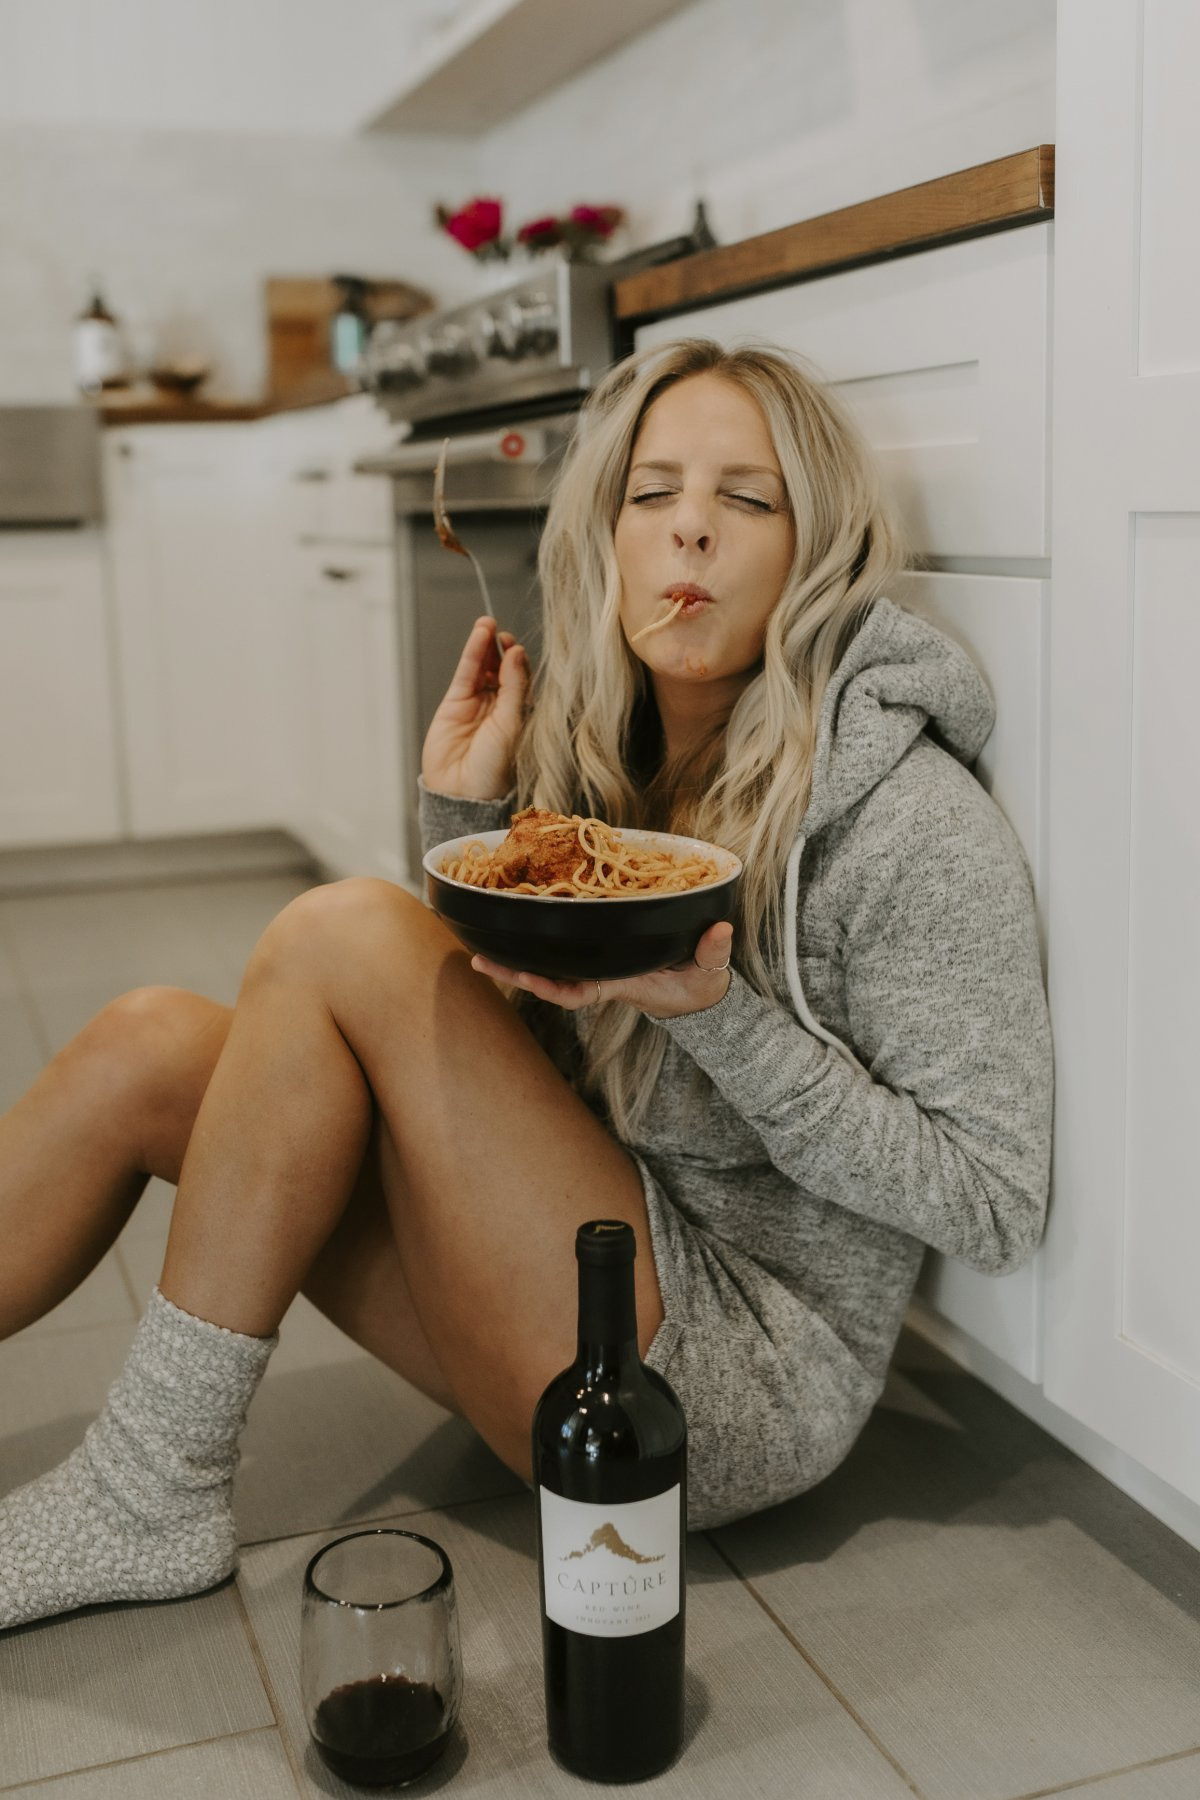 Woman Sitting on the Floor Eating Spaghetti with Wine Bottle and Glass Sitting on Floor